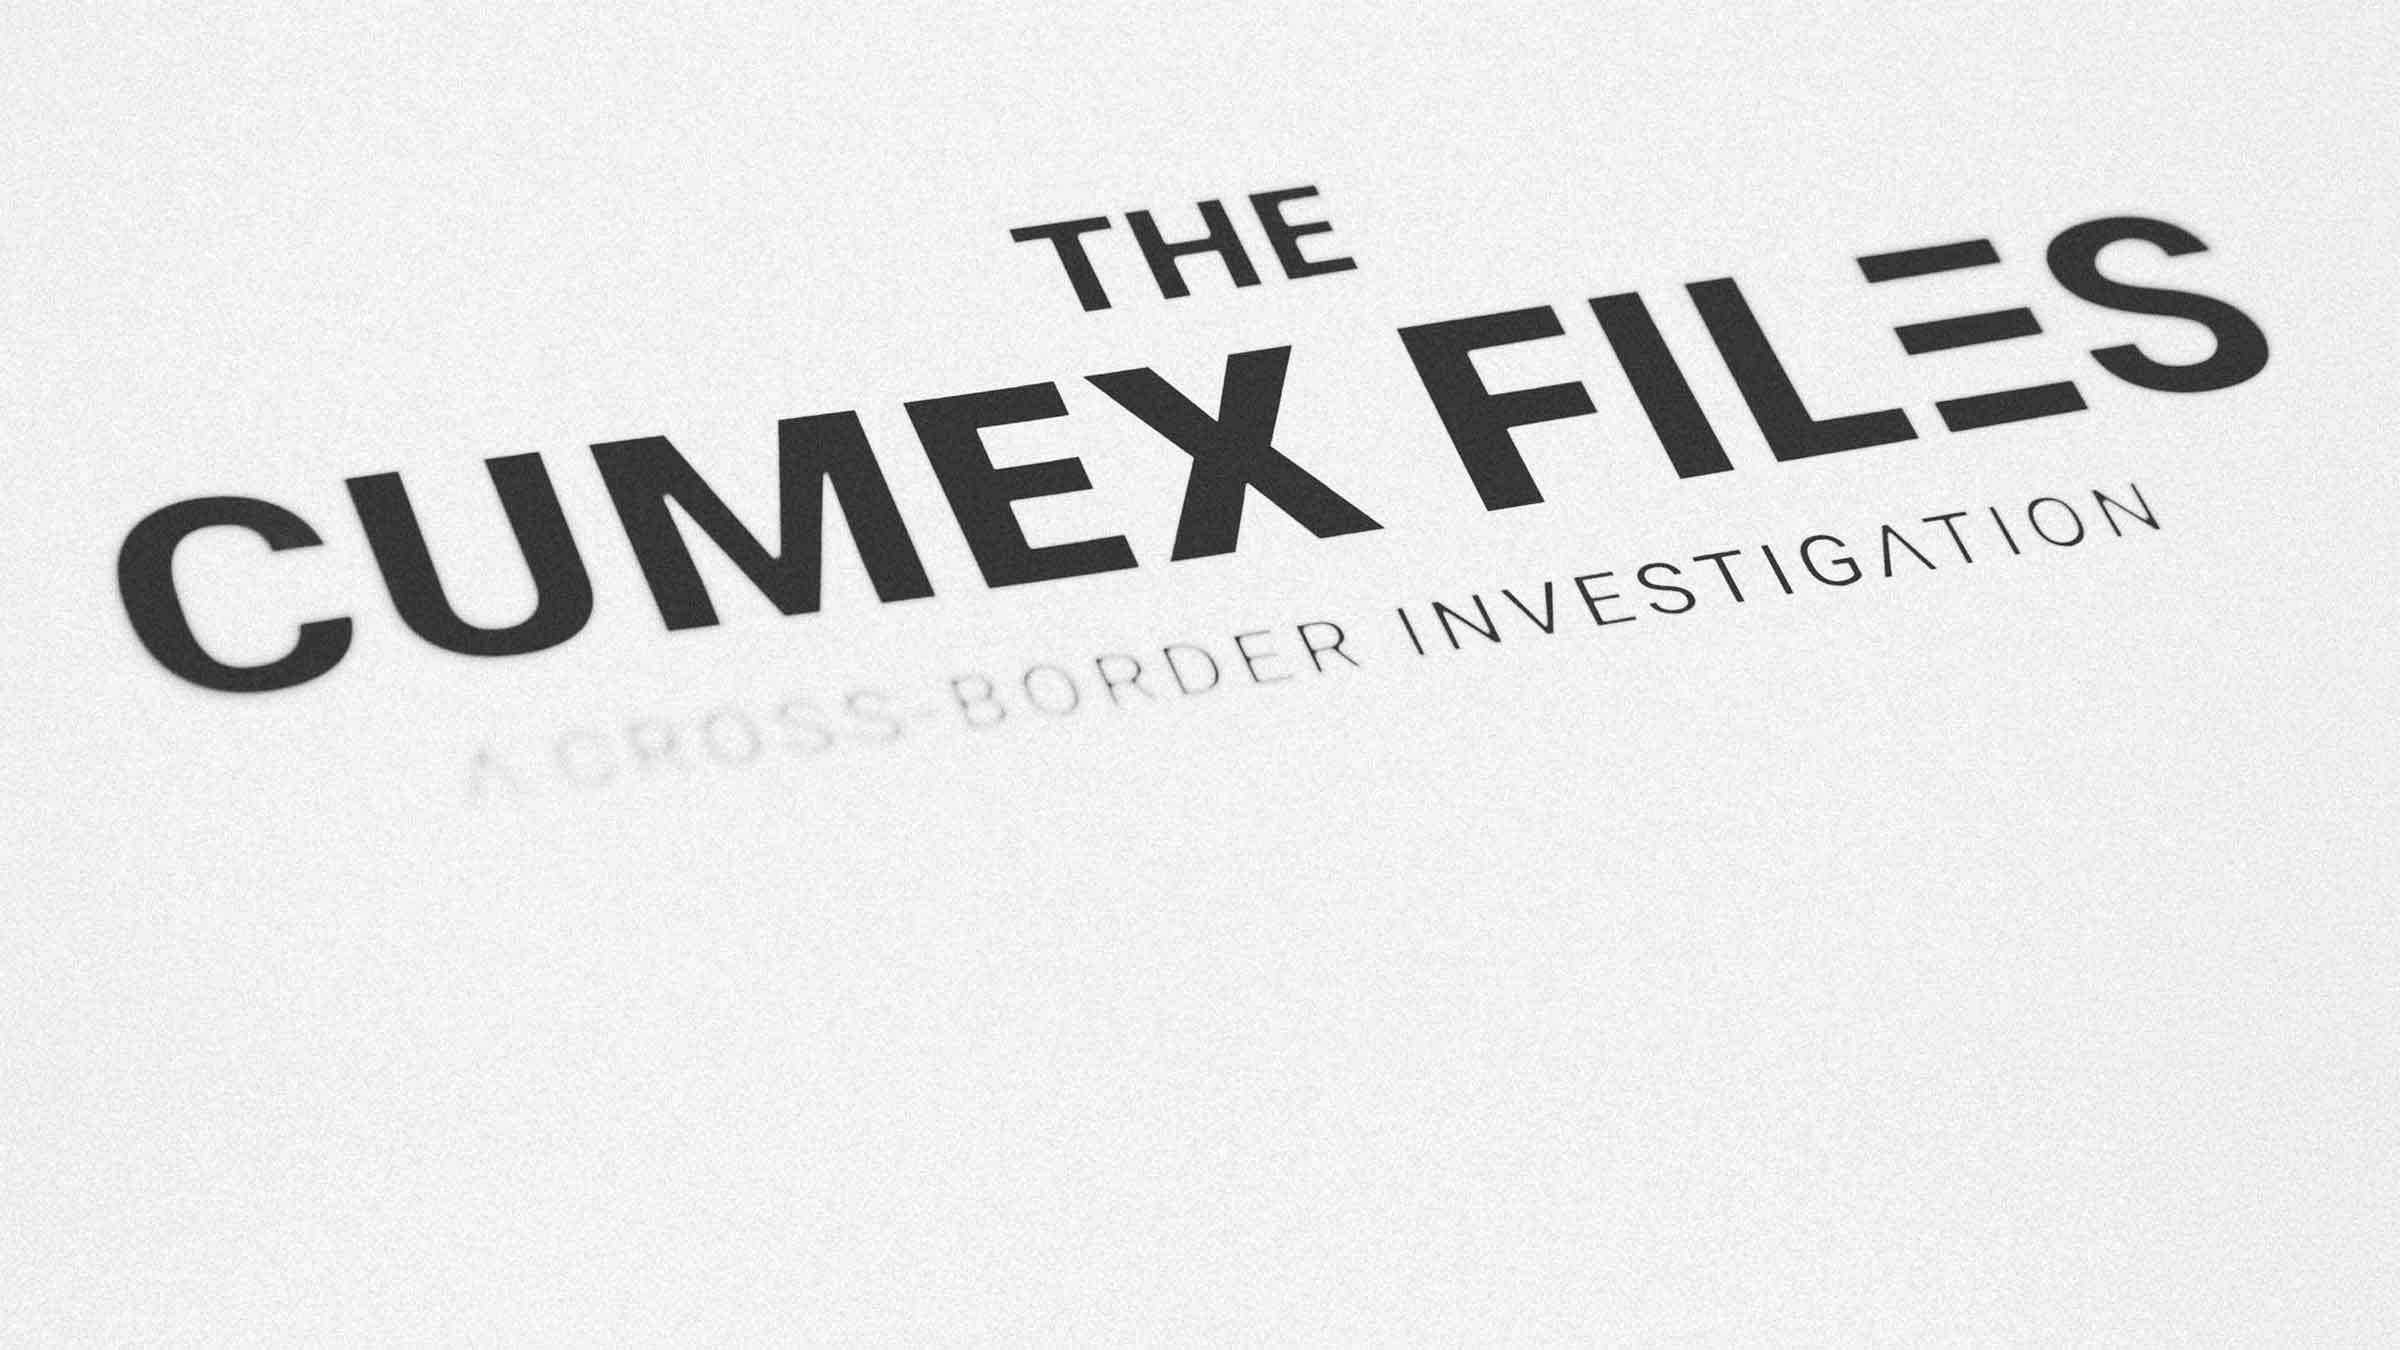 The CumEx Files